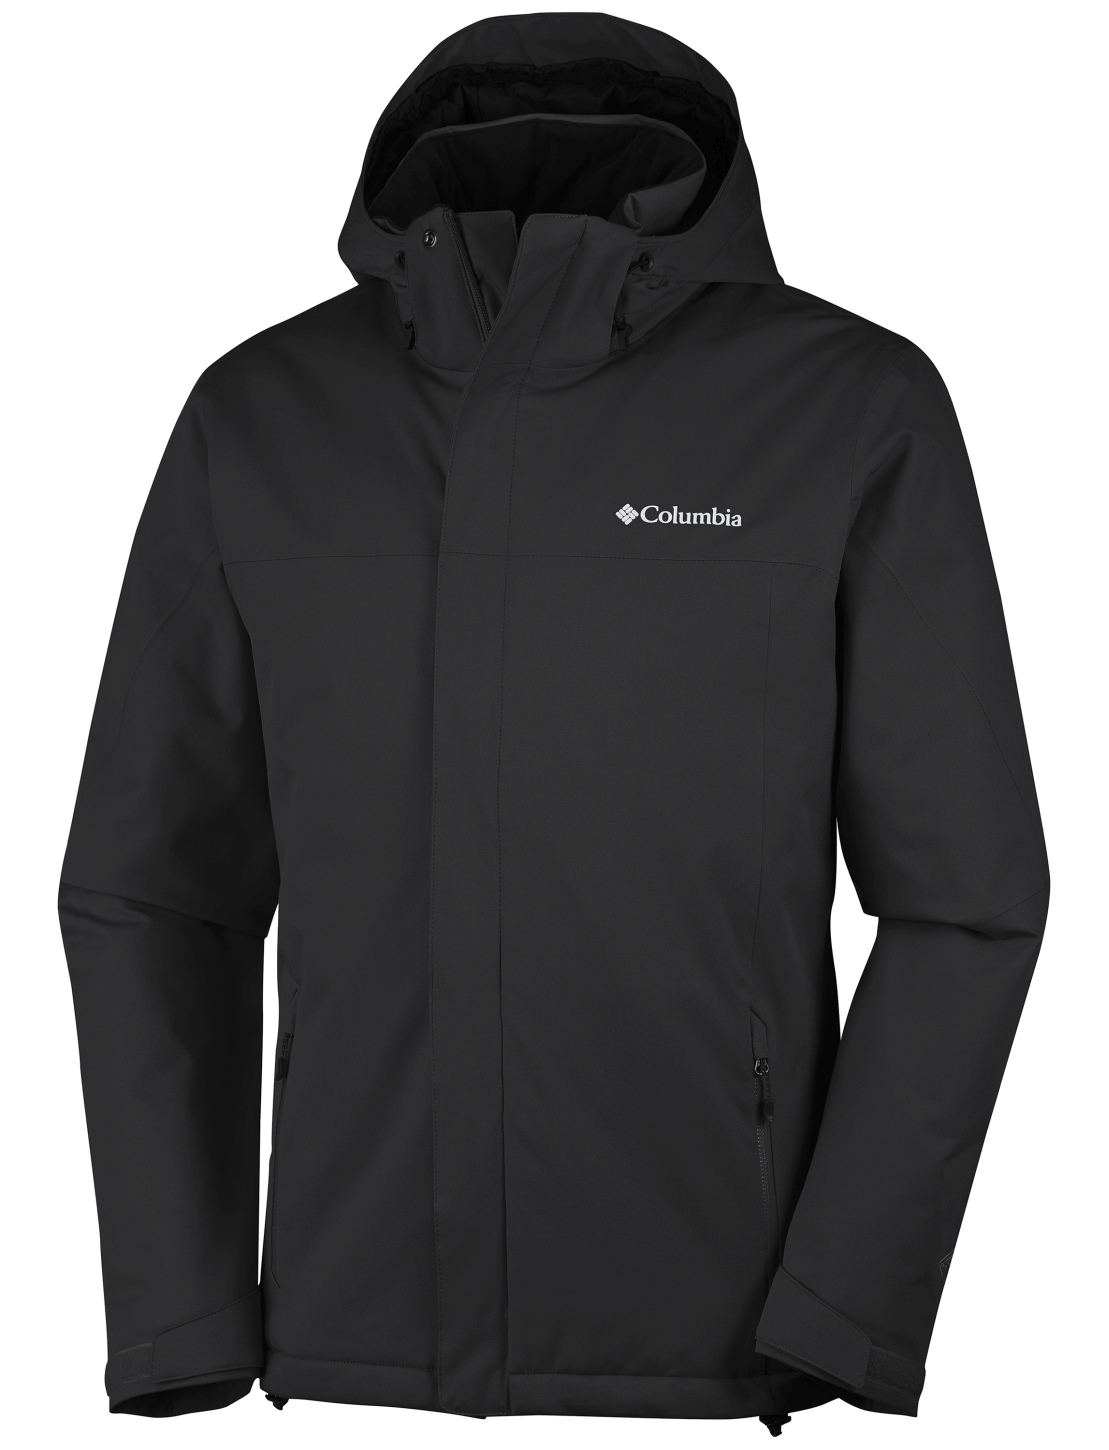 Columbia Men's Everett Mountain Jacket Black-30